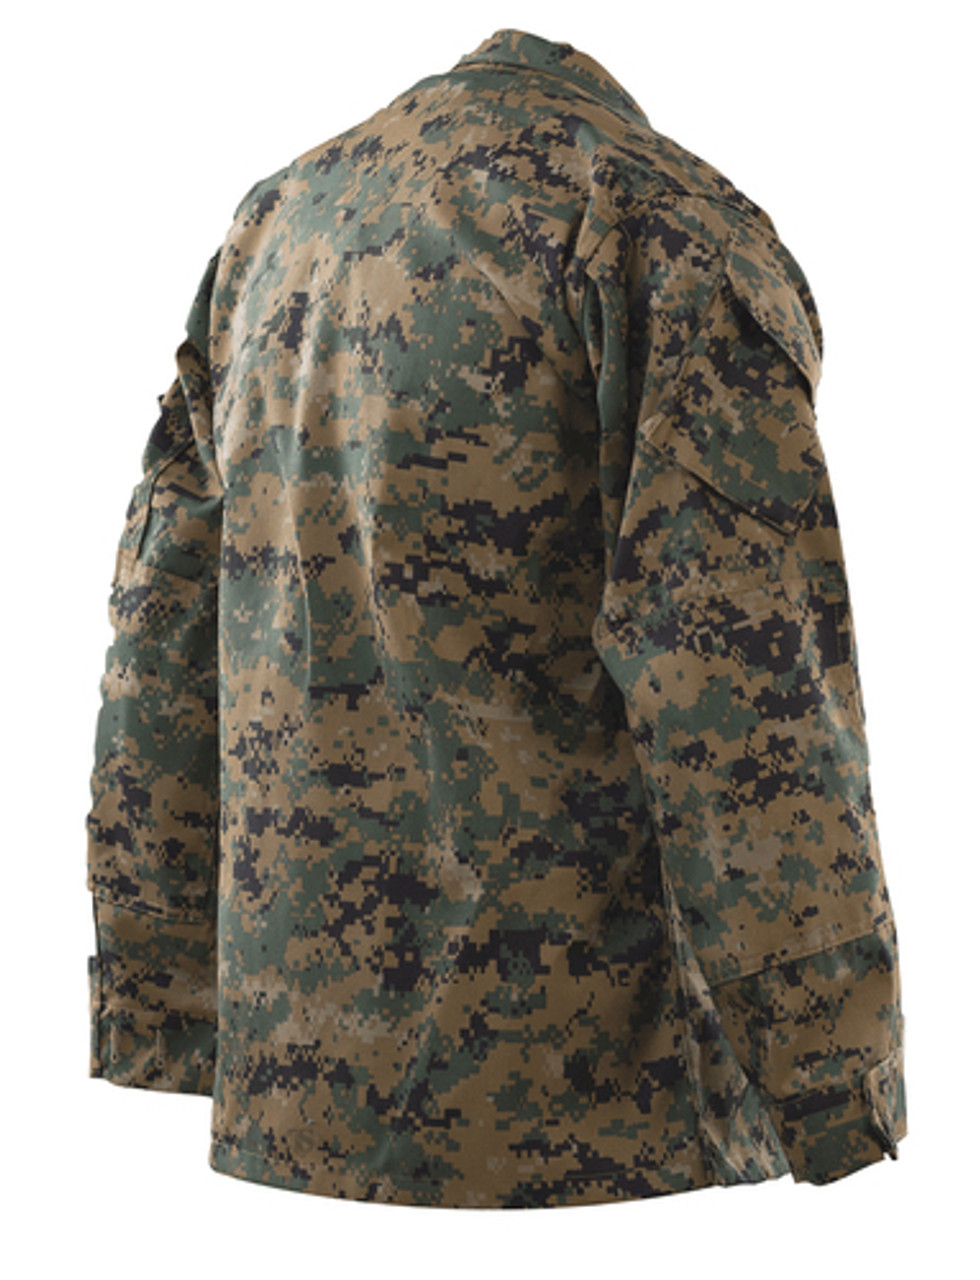 Tru-Spec TS-1929 VAT Print Digital Long Sleeve Uniform Shirt, 2 Chest Pockets, Elbow Pad Pockets, Sleeve Pocket, available in Desert Digital, Urban Digital, or Woodland Digital